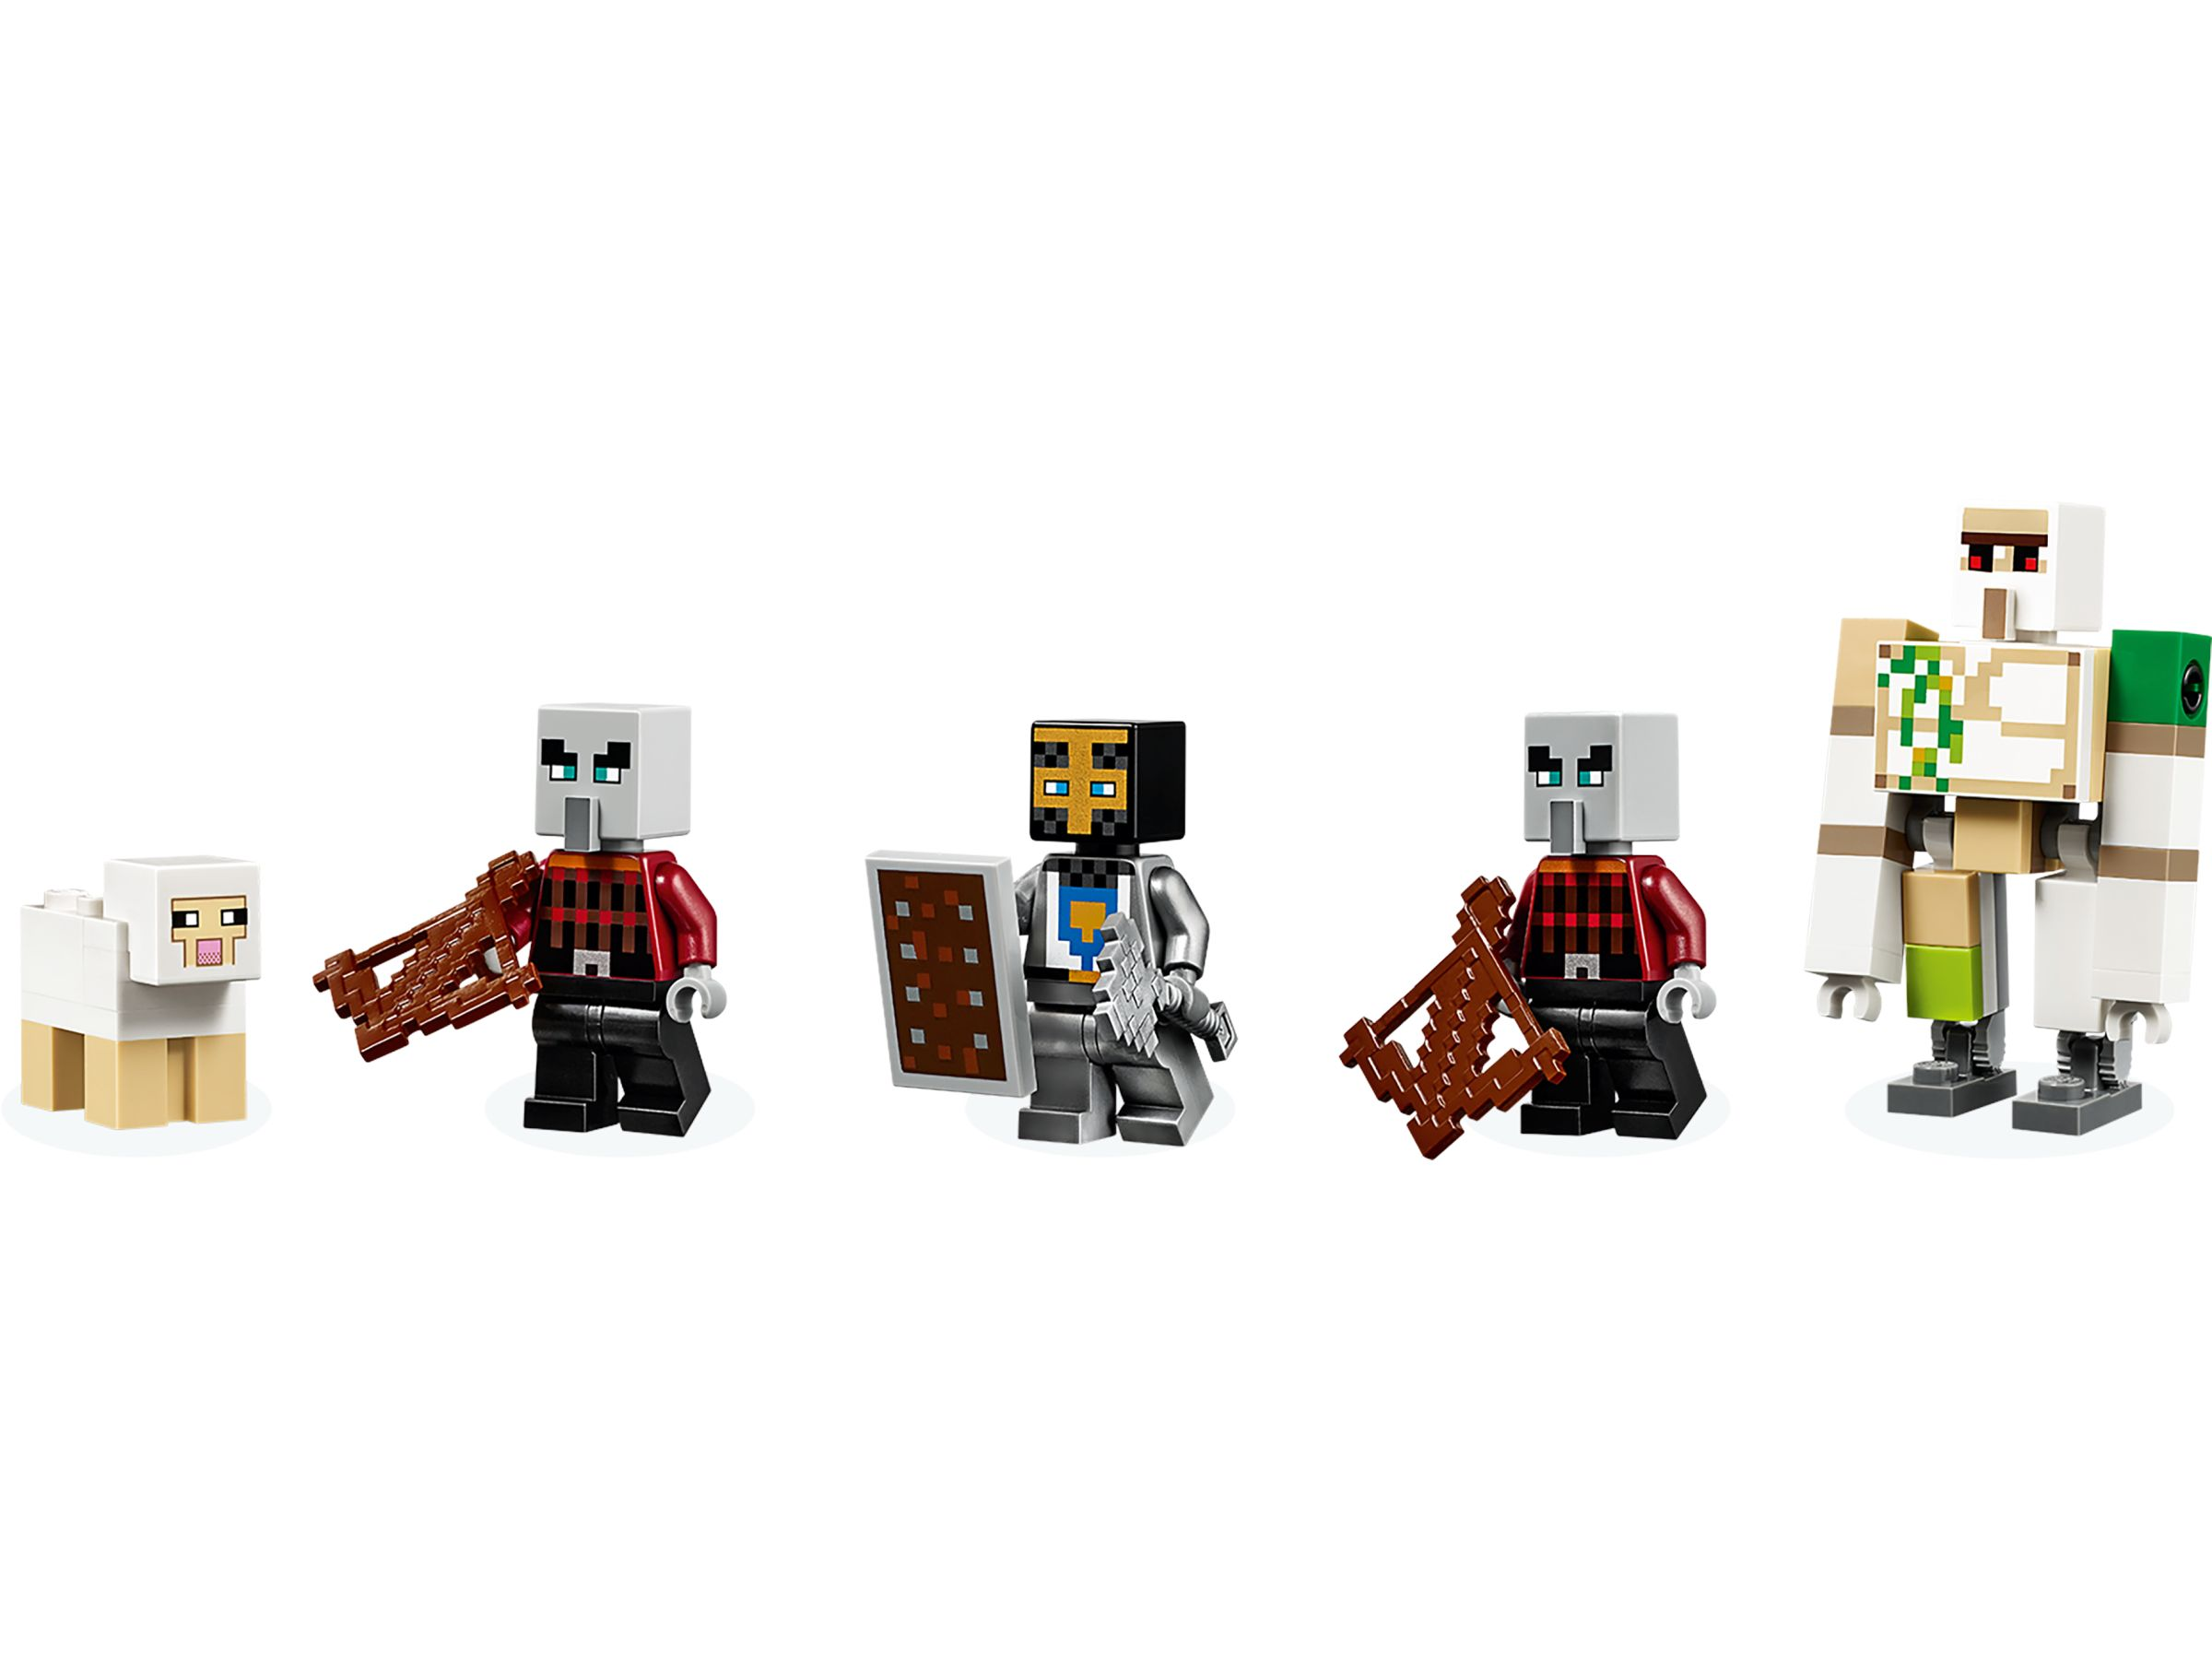 LEGO Minecraft 21159 The Raider Outpost LEGO_21159_alt6.jpg